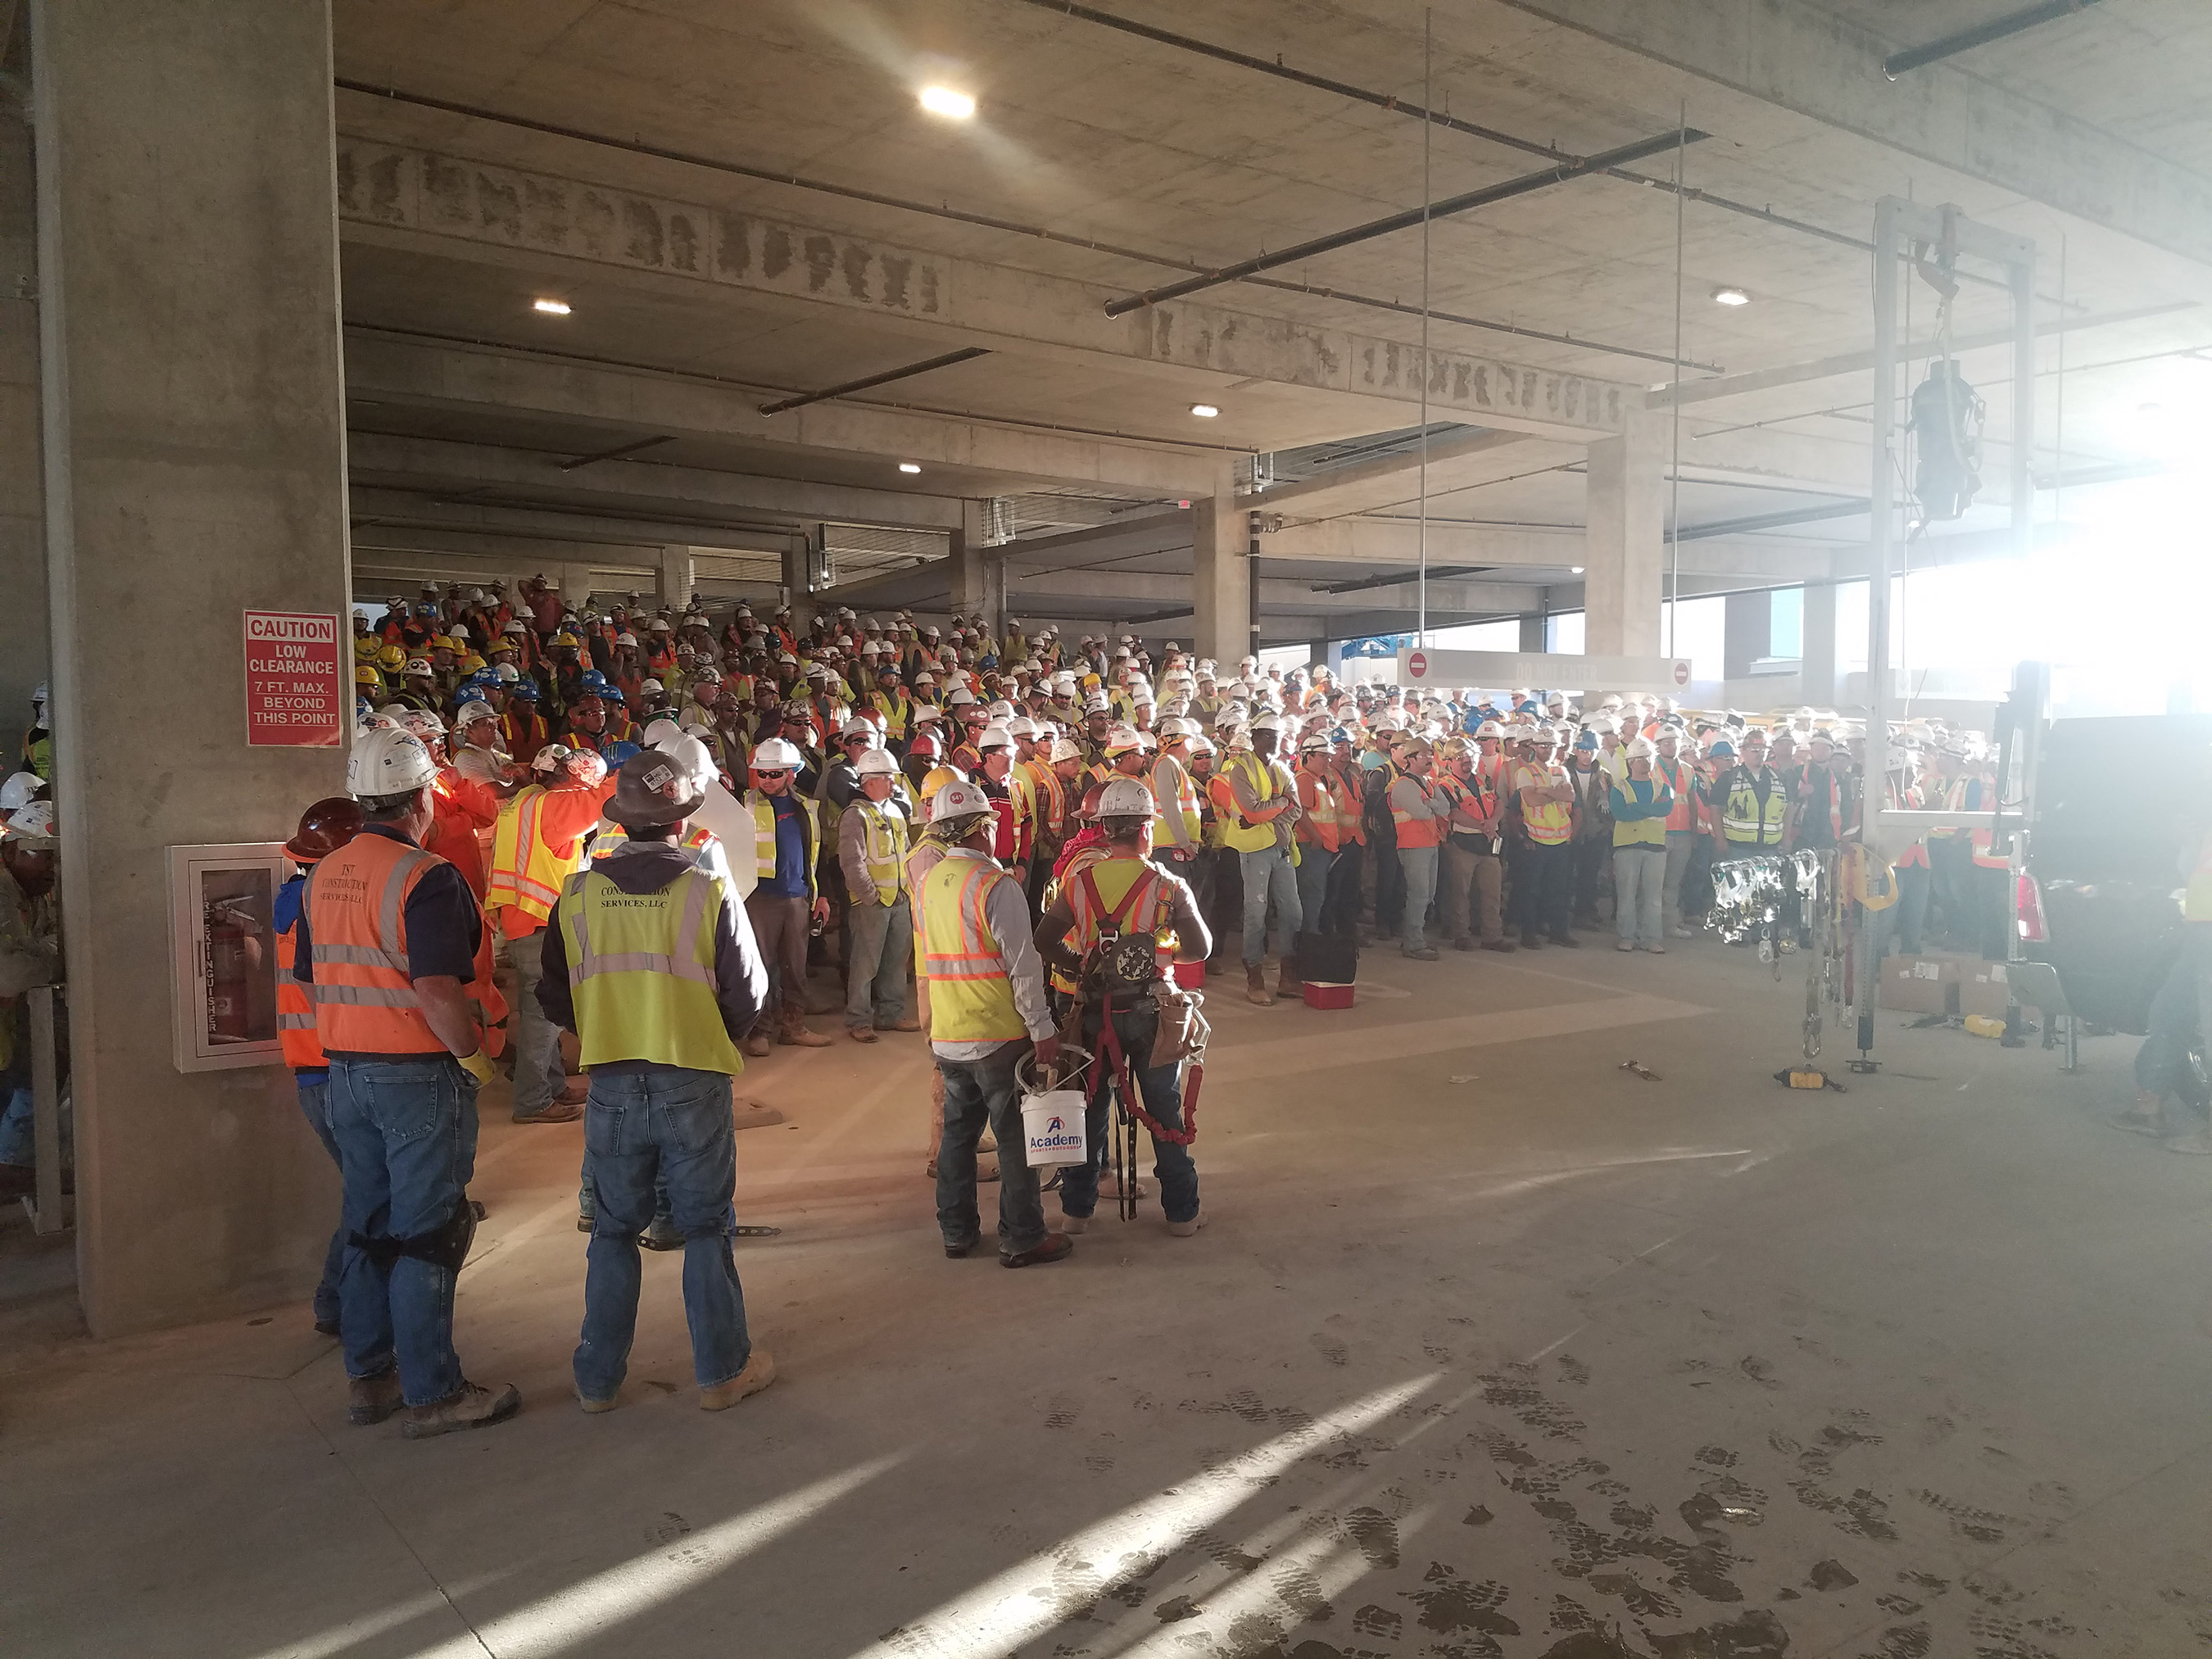 MSA safety expert, Miguel Campos, performs fall protection training for 500+ employees from Manhattan Construction at Omni Hotel & Retail in Frisco, TX.